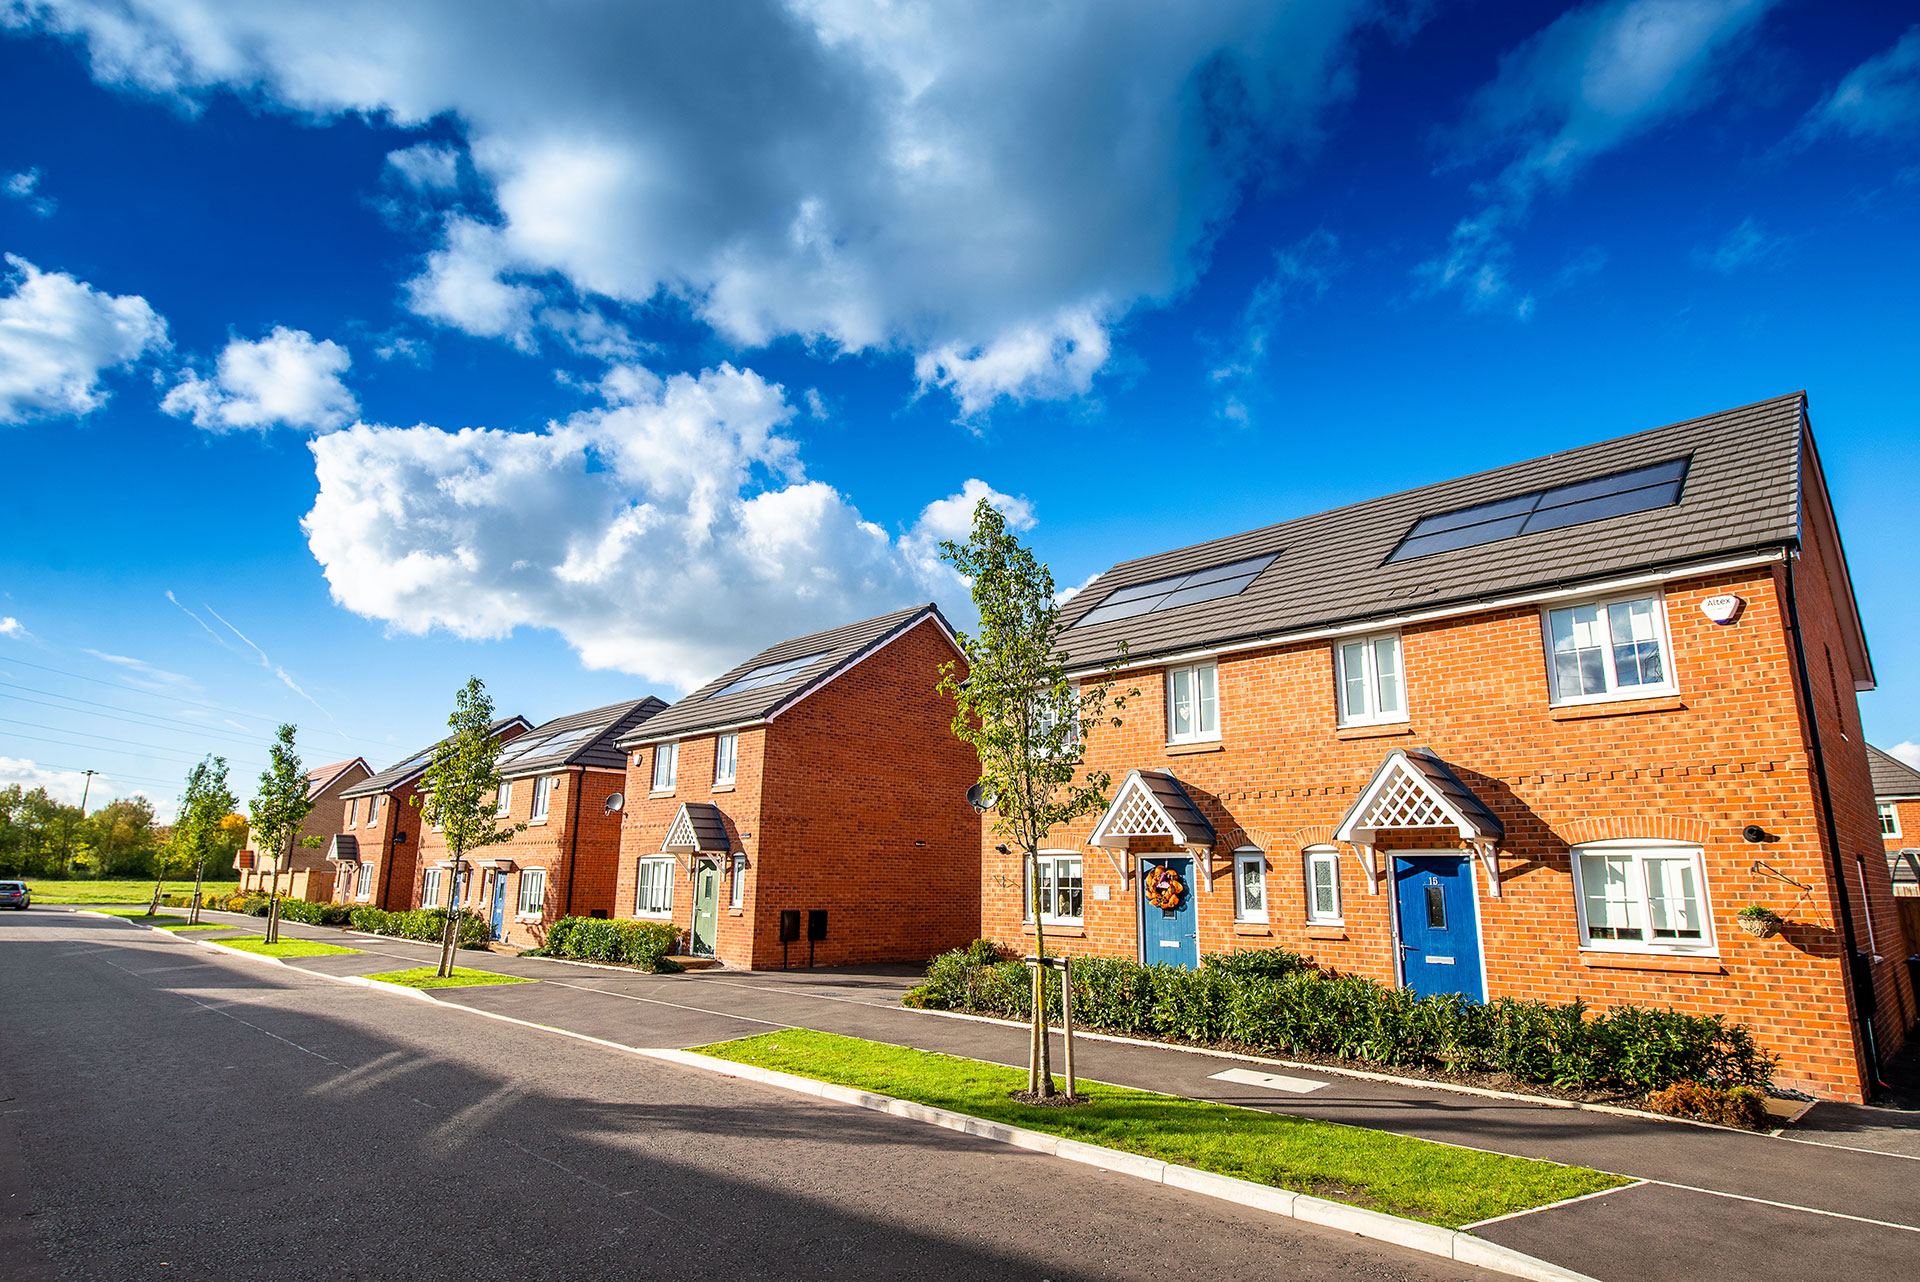 Ascend-secures-more-than-1,000-lettings-post-lockdown